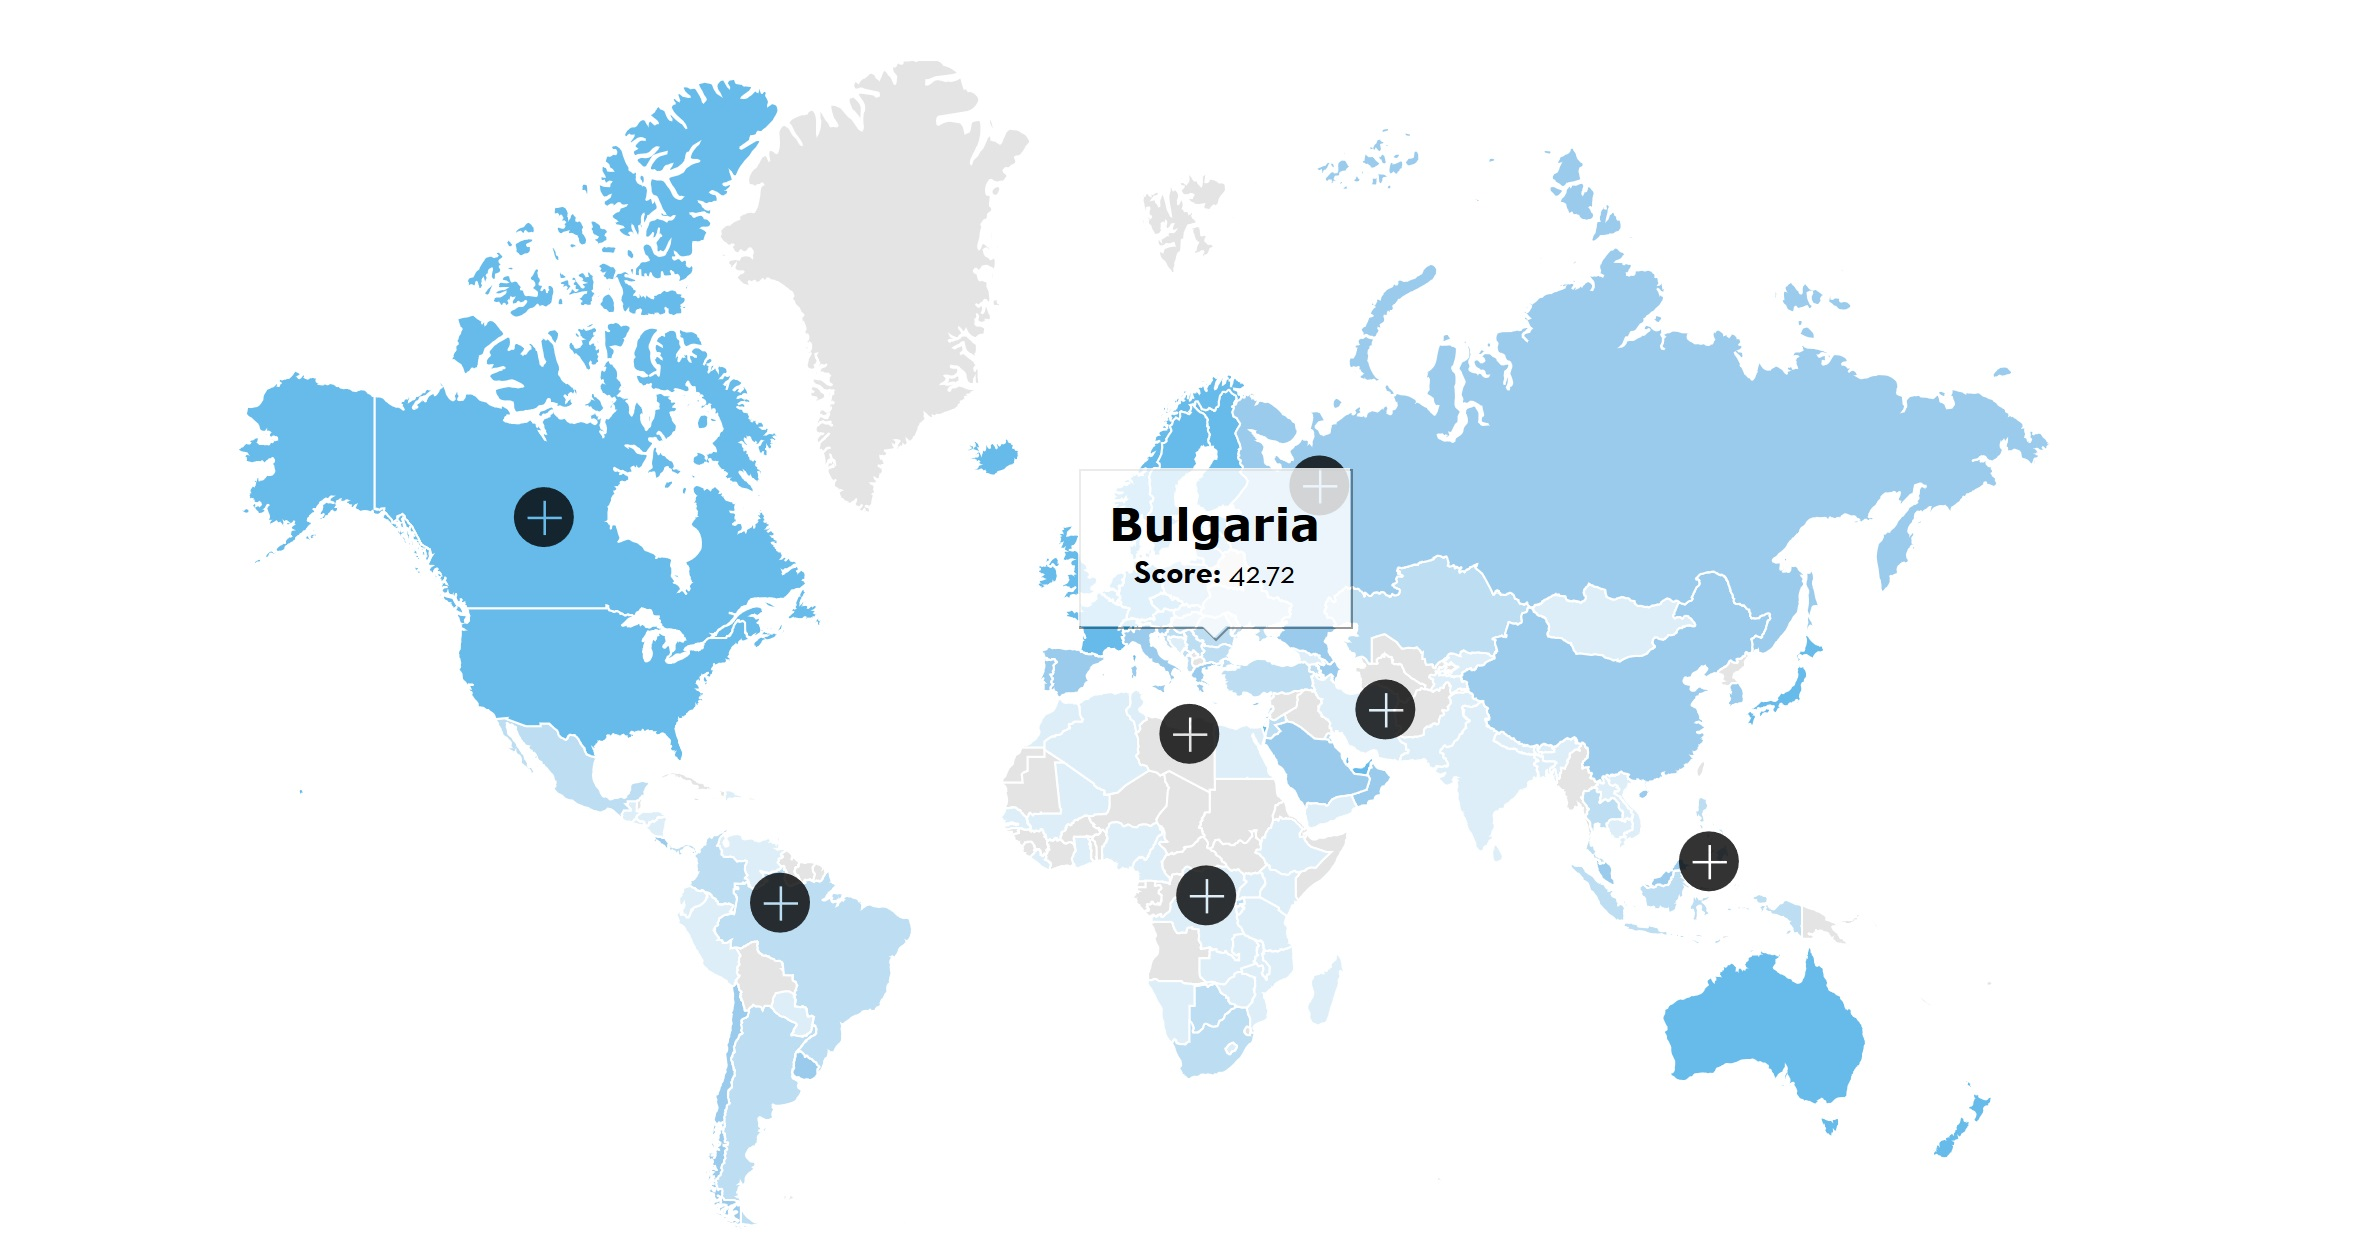 Bulgaria-Adecco-GTCI-World-Map